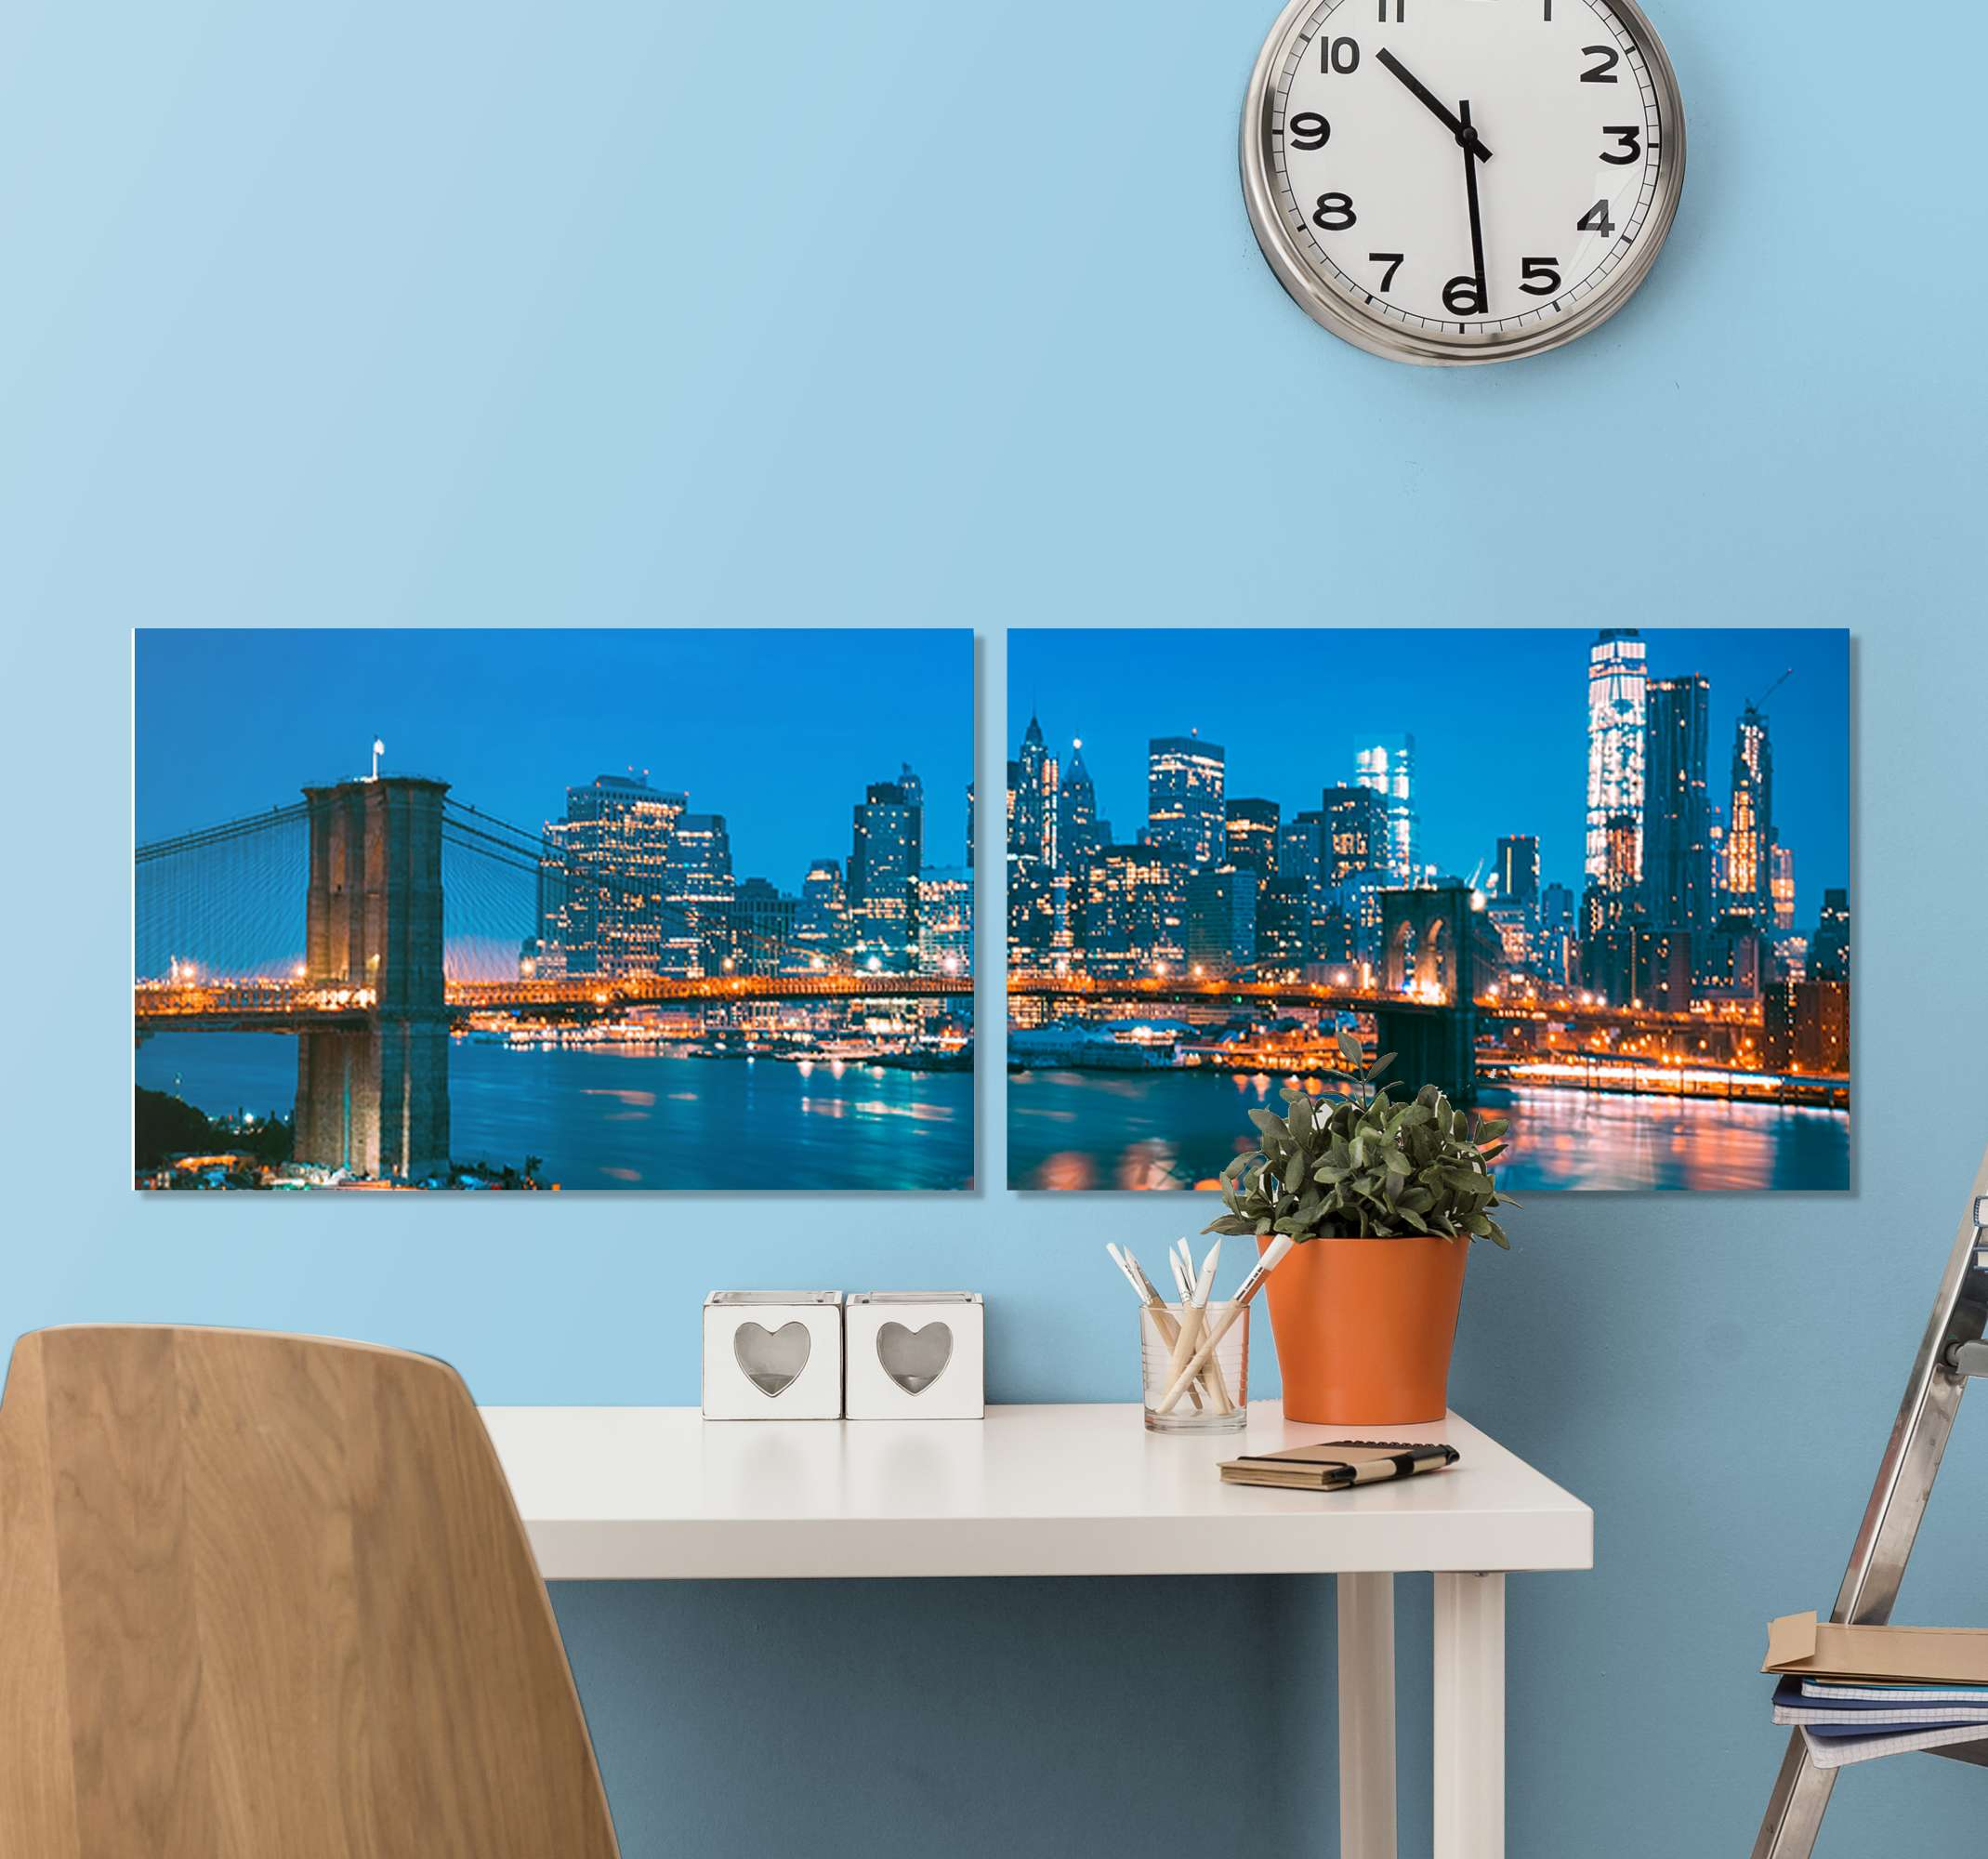 TenStickers. Skyscraper of New York East river at night City skyline prints. What a lovely and breath taking illustrative NYC skyscraper East river at night canvas art design. Suitable for home, office, shop, lounge decoration.